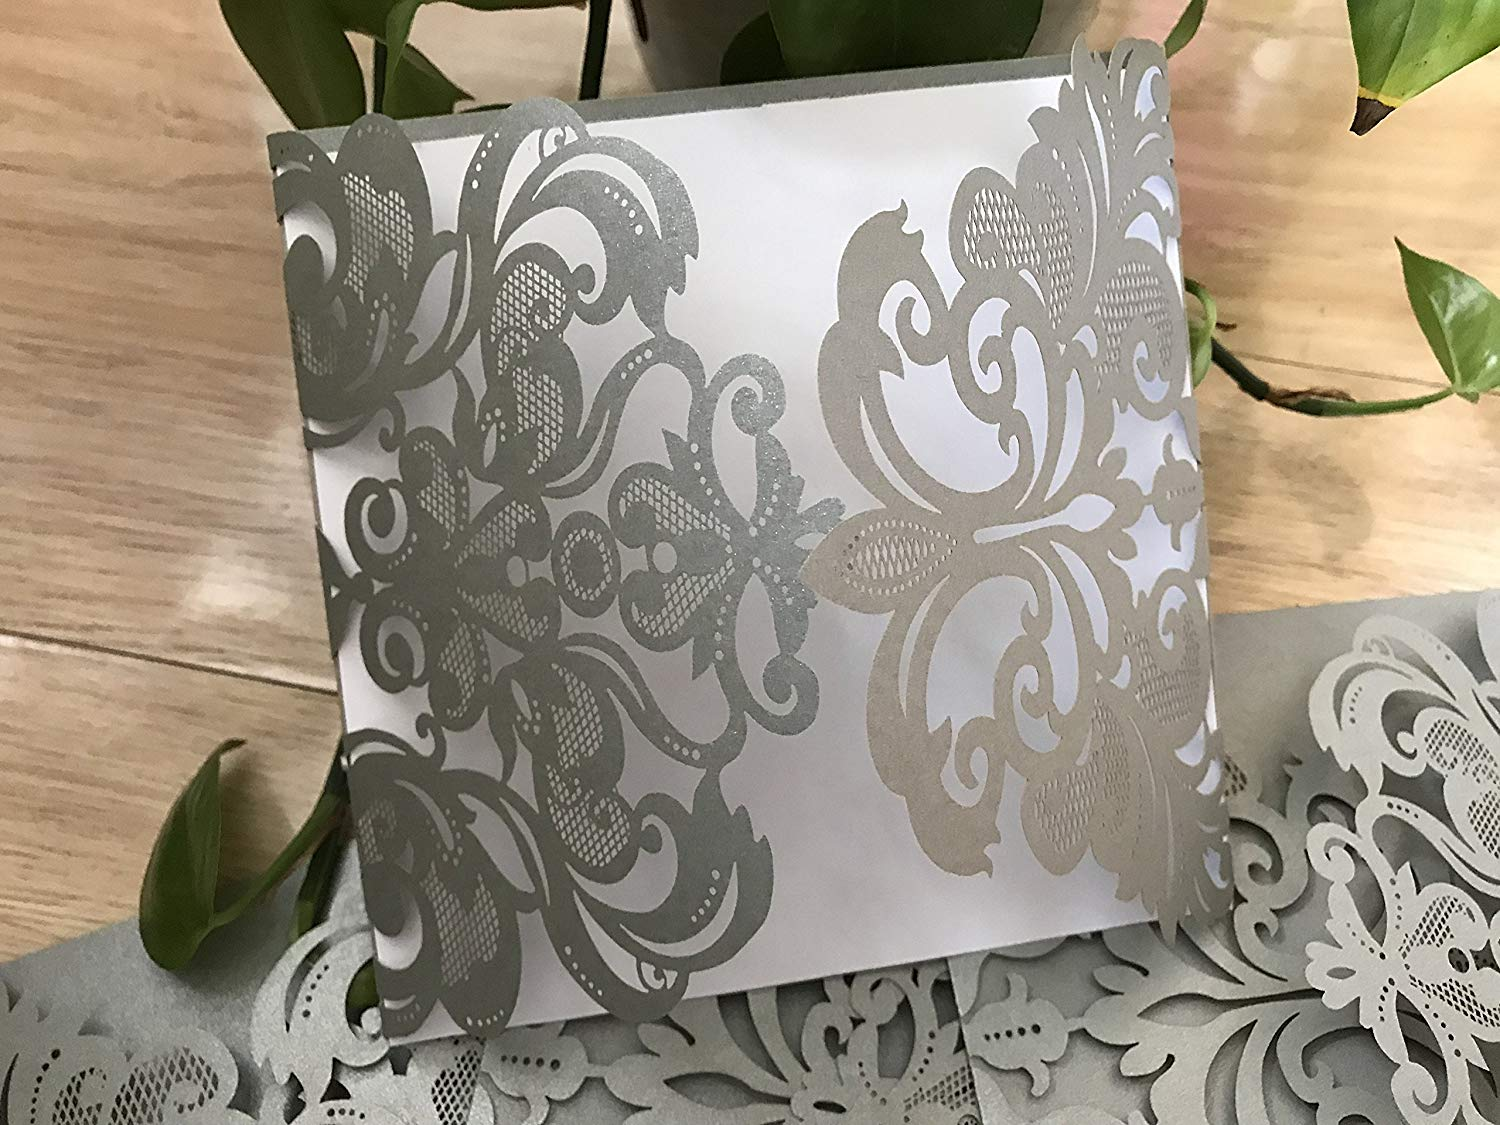 25pcs Pearl Silver Laser Cut Square Invitations,DIY Wedding Invitations,Wedding Cards,Quince,Sweet Sixteen Invitation Cards,Wedding Cards,Invitation Cards